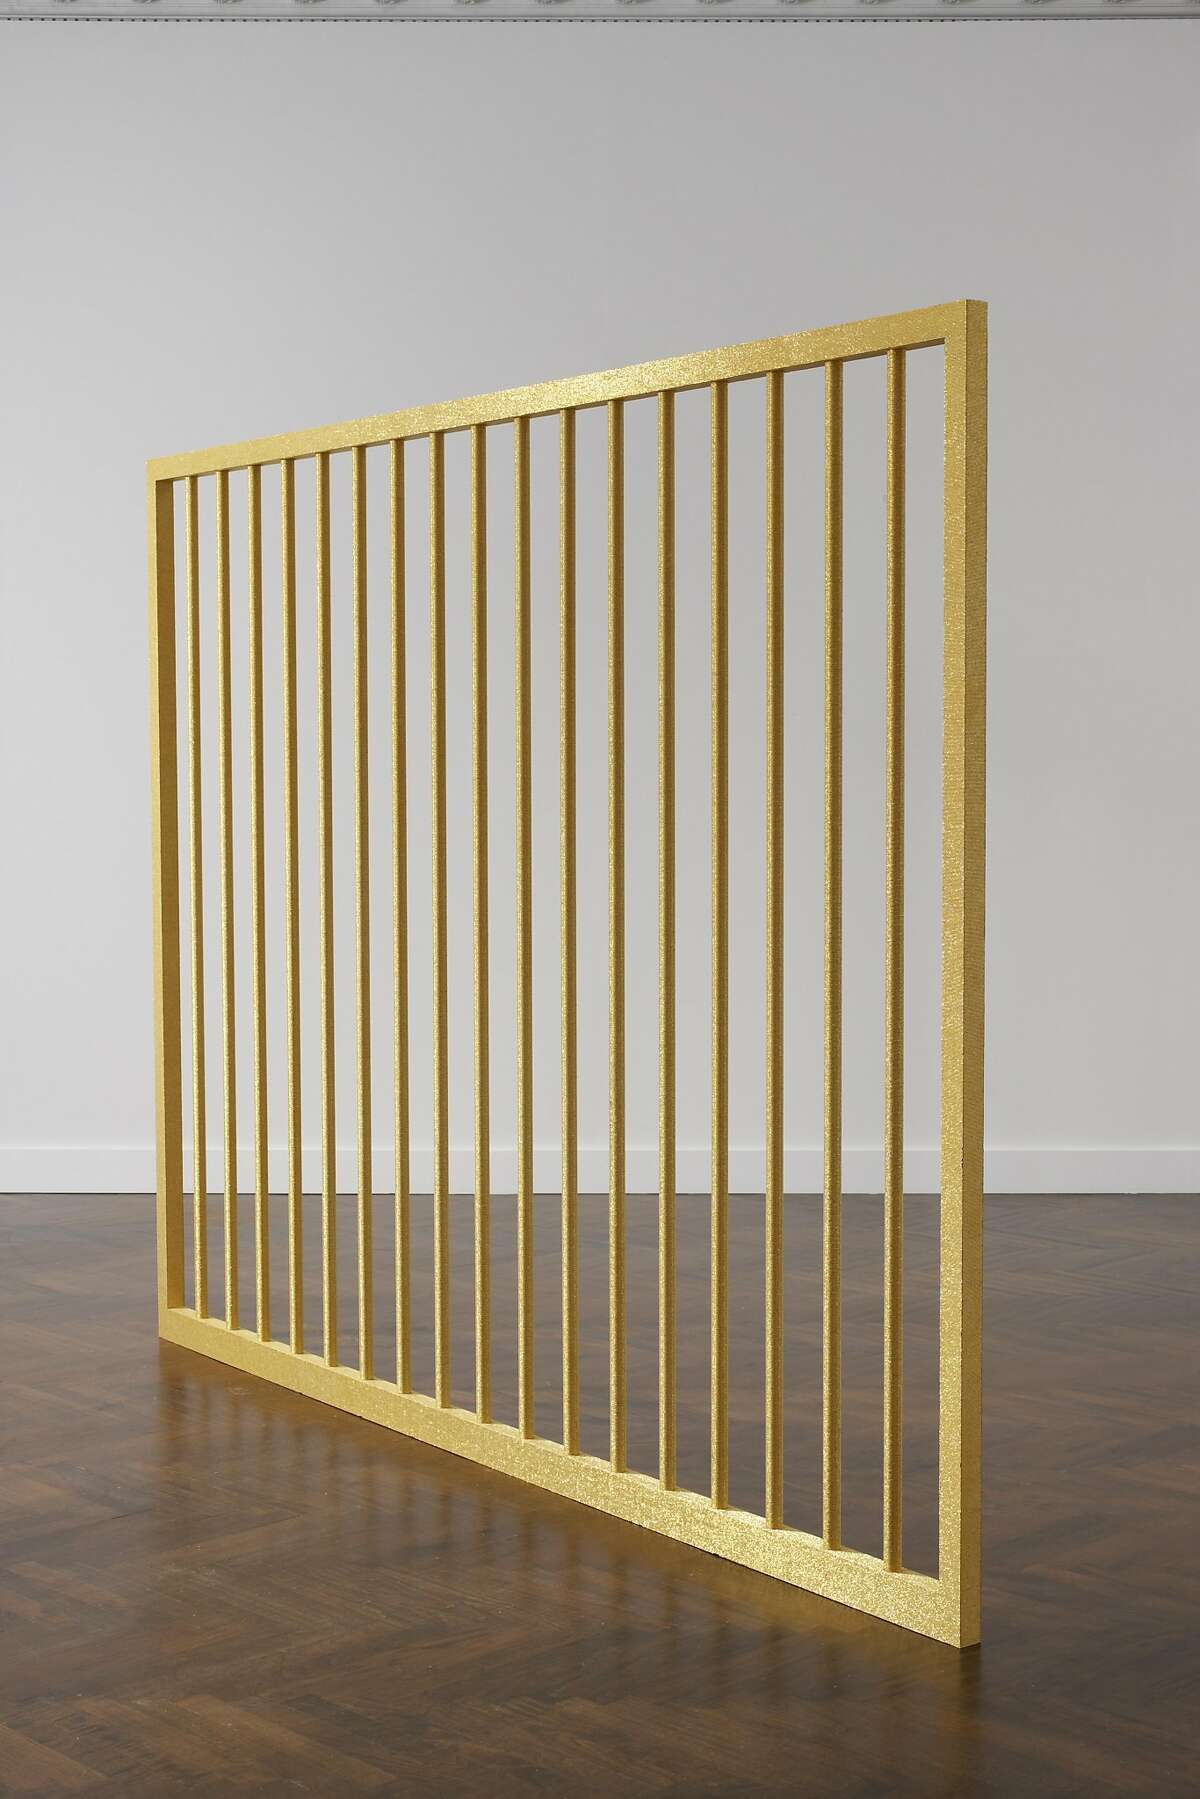 3.�� �Liza Lou, Barricade, 2007-8; gold-plated beads on aluminum; 88 x 108 x 3 in.; courtesy the artist and White Cube Gallery, London; photo: Tom Powell; � Liza Lou